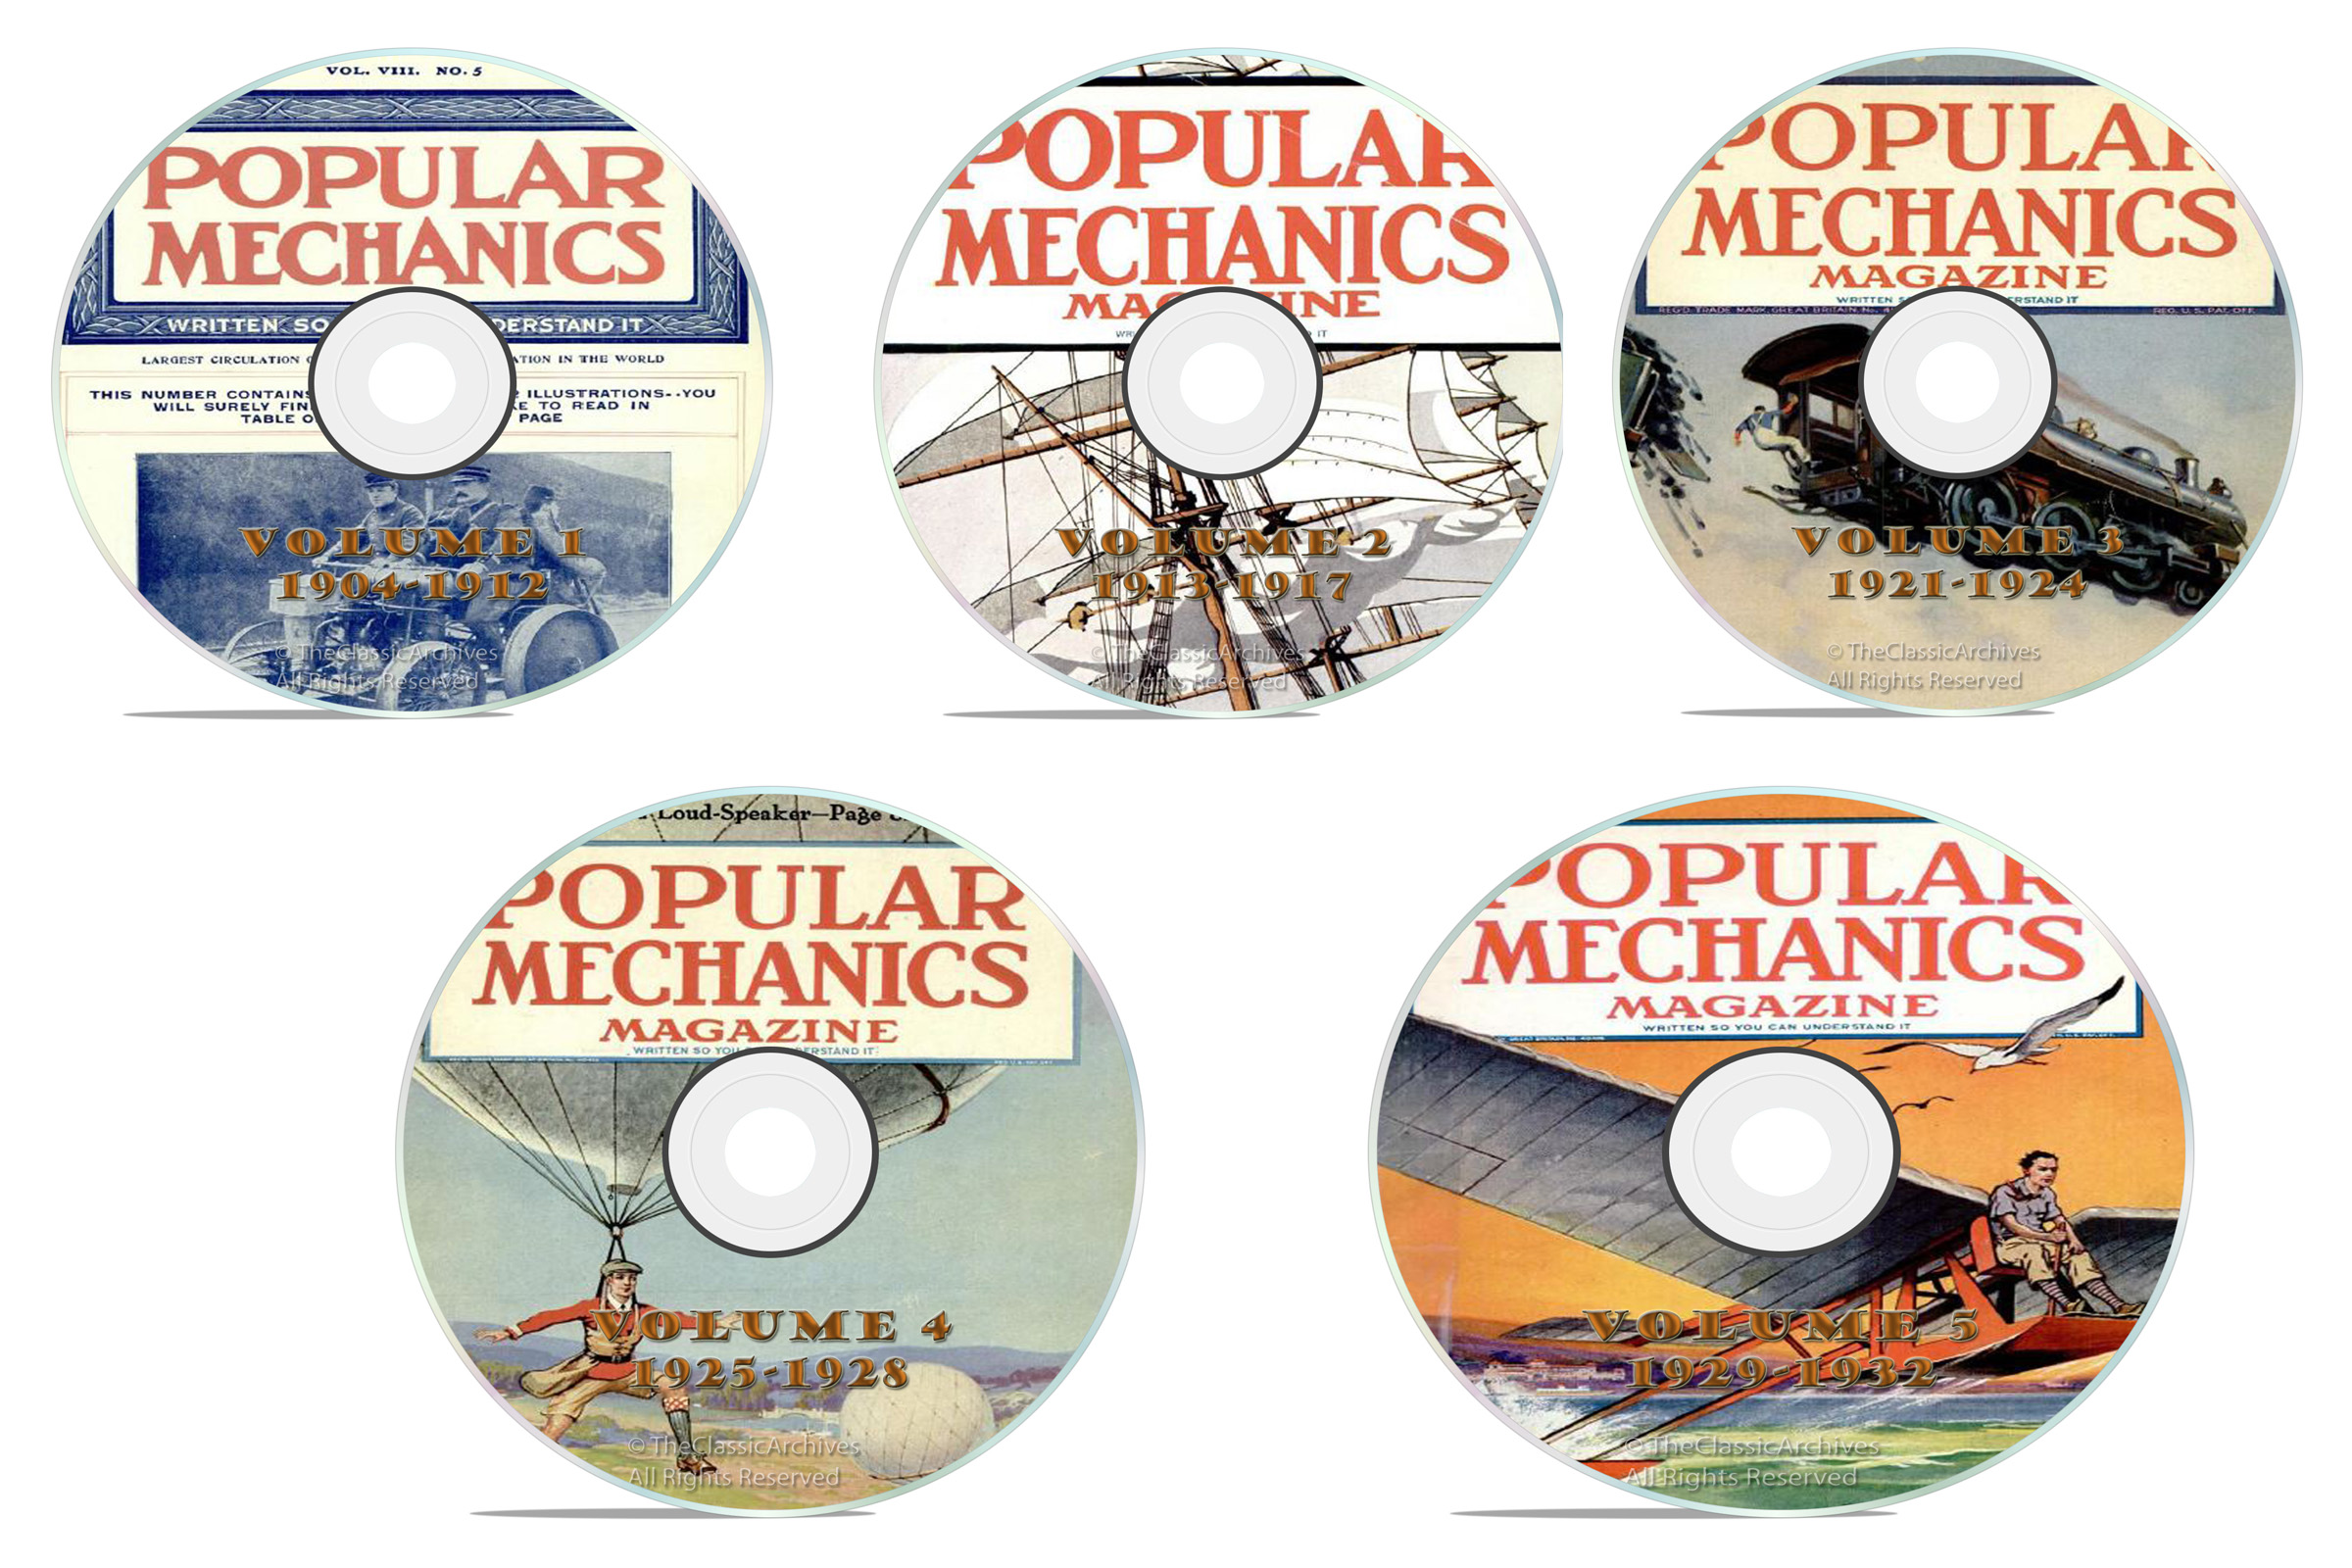 Vintage Popular Mechanics Magazine, 251 issues, 5 DVD Set, 1904-1932 - Click Image to Close